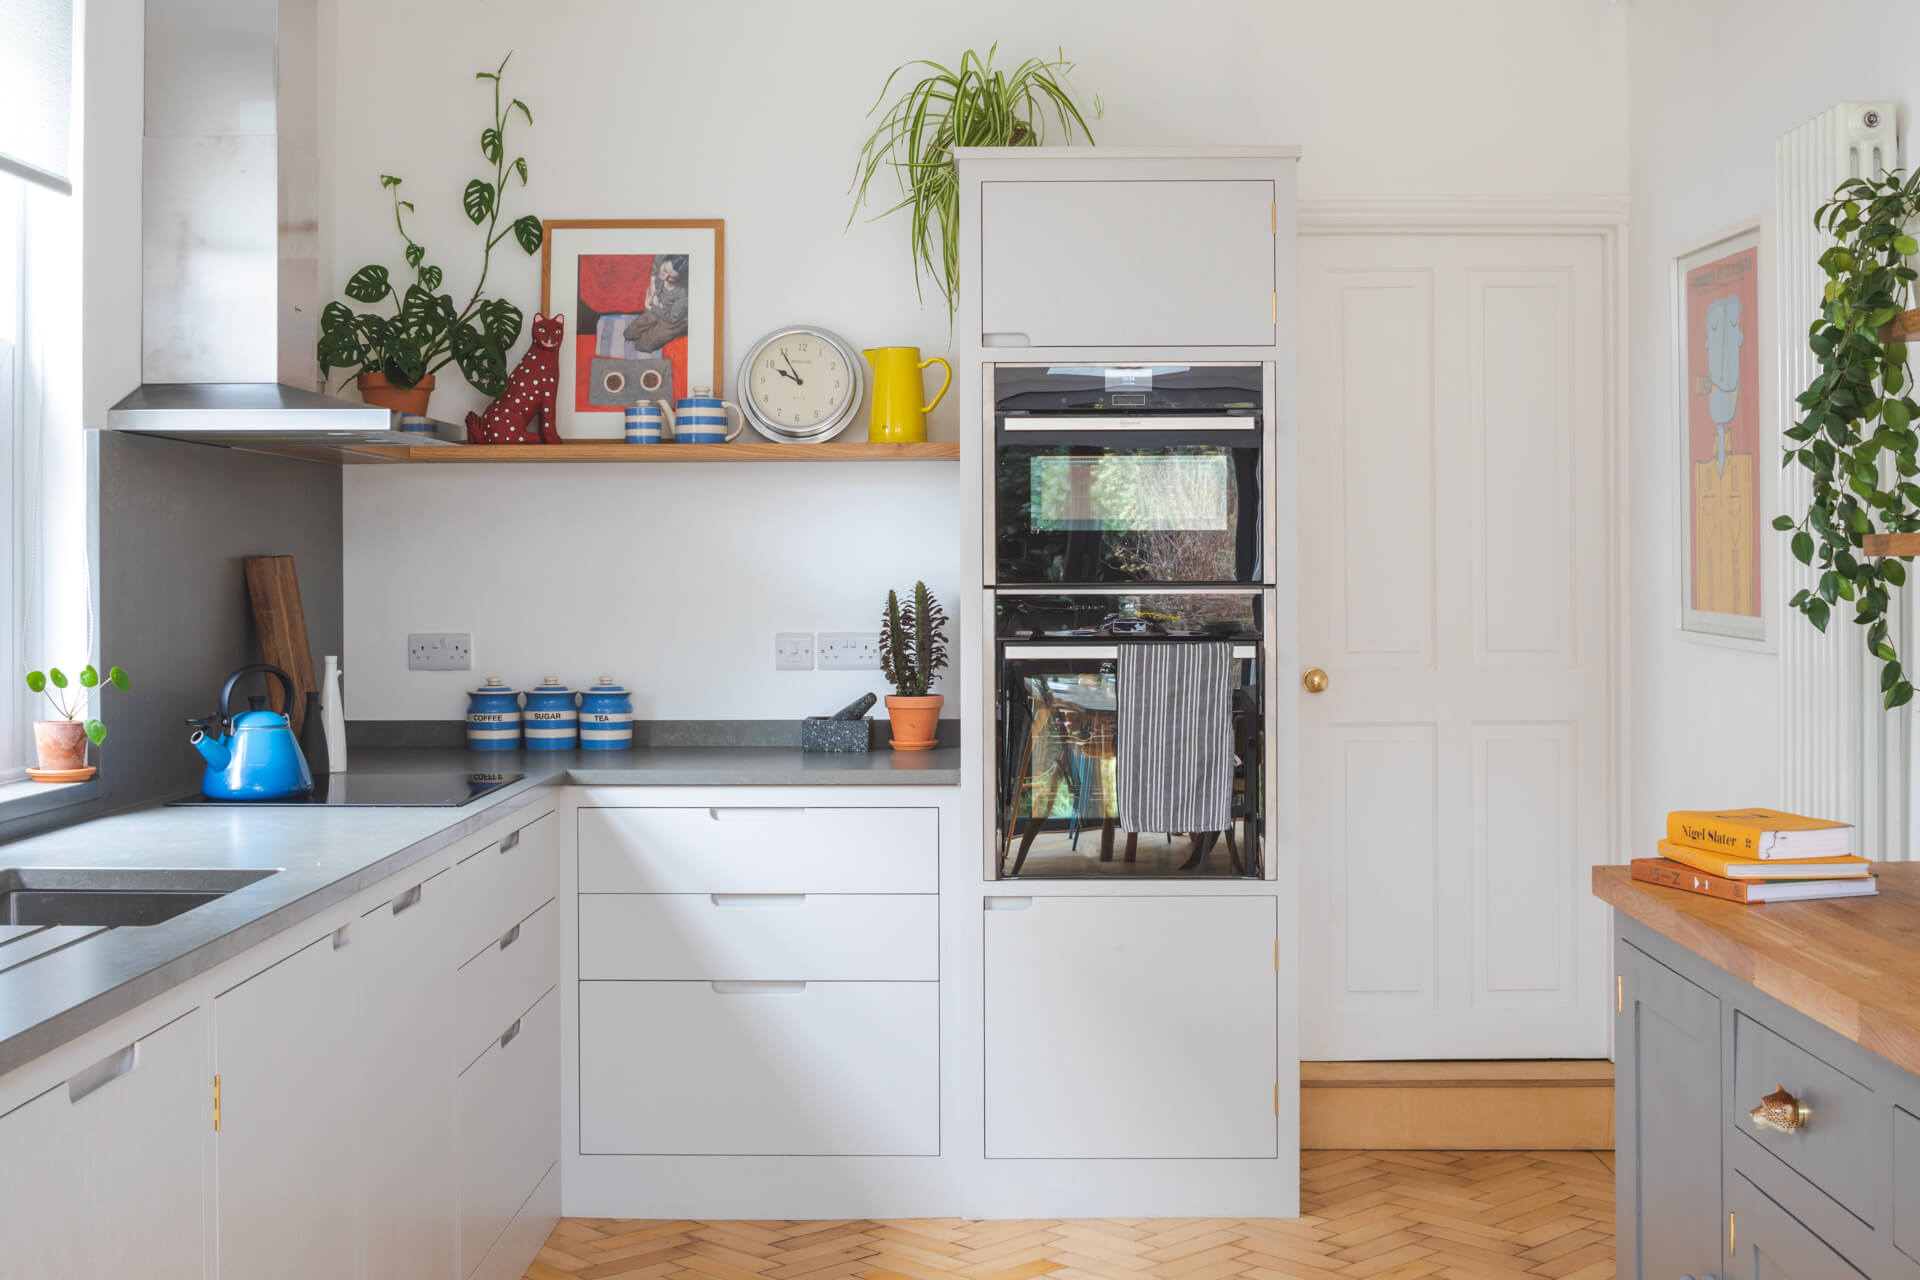 Bristol Terrace Kitchen - Handleless gey kitchen with parquet flooring